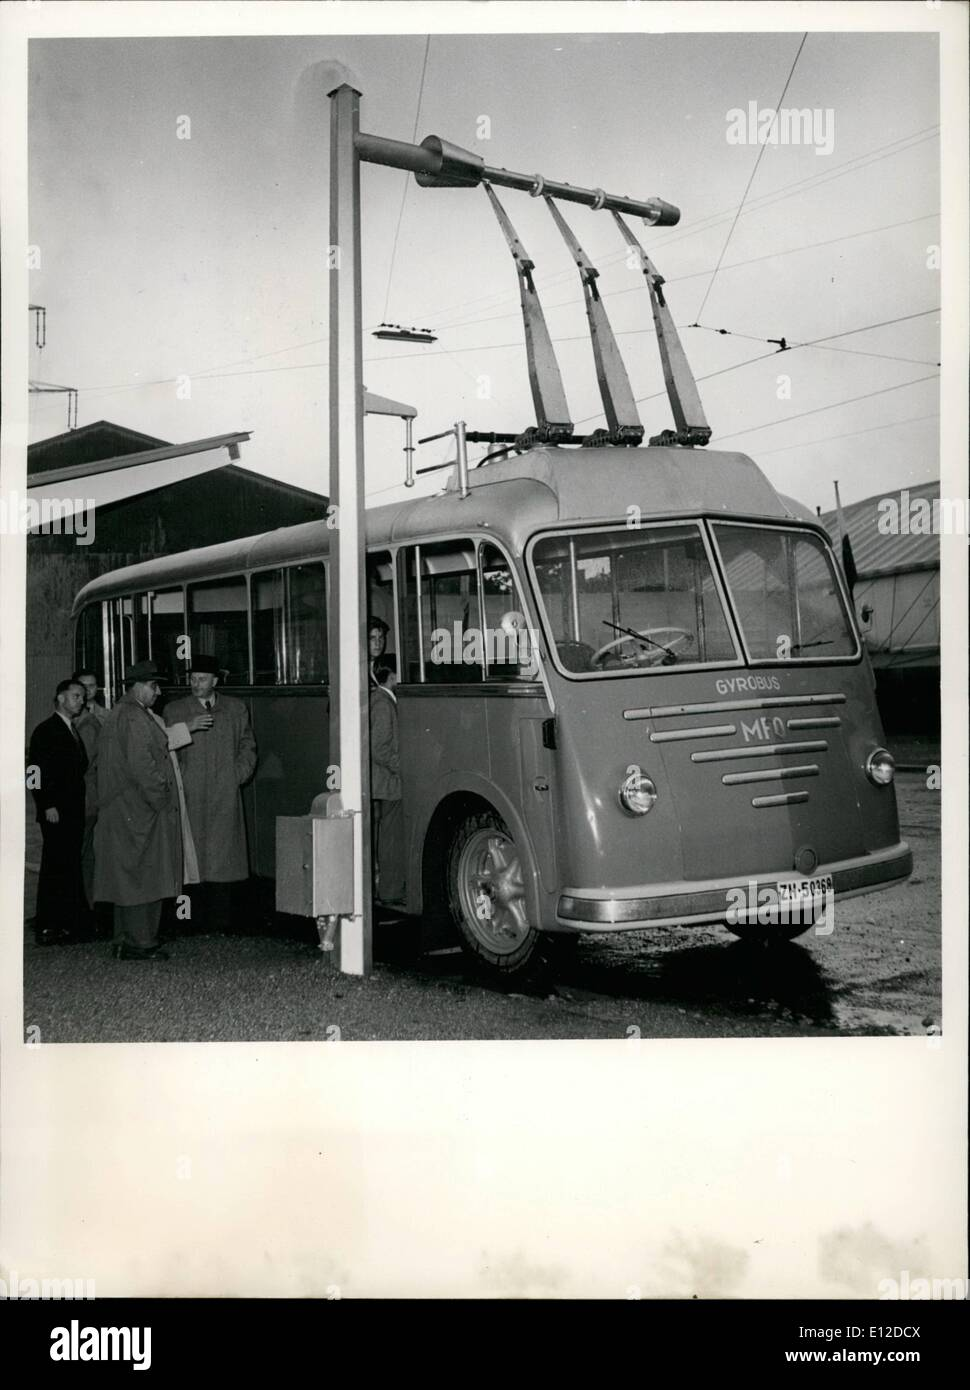 Dec. 19, 2011 - Traffic Exhibition Munich 1953 the Swiss firm Orlikoln invented the first bus of the world operated with fly-wheel energy. The gyrobus is charged with electrical energy every three kilometers by setting going a large swinging block which weighs 1.5 tons. This block then generates the electric current which drives the motor of the bus. The first gyrobus is to be taken into service in Switzerland in September 1953. - Stock Image